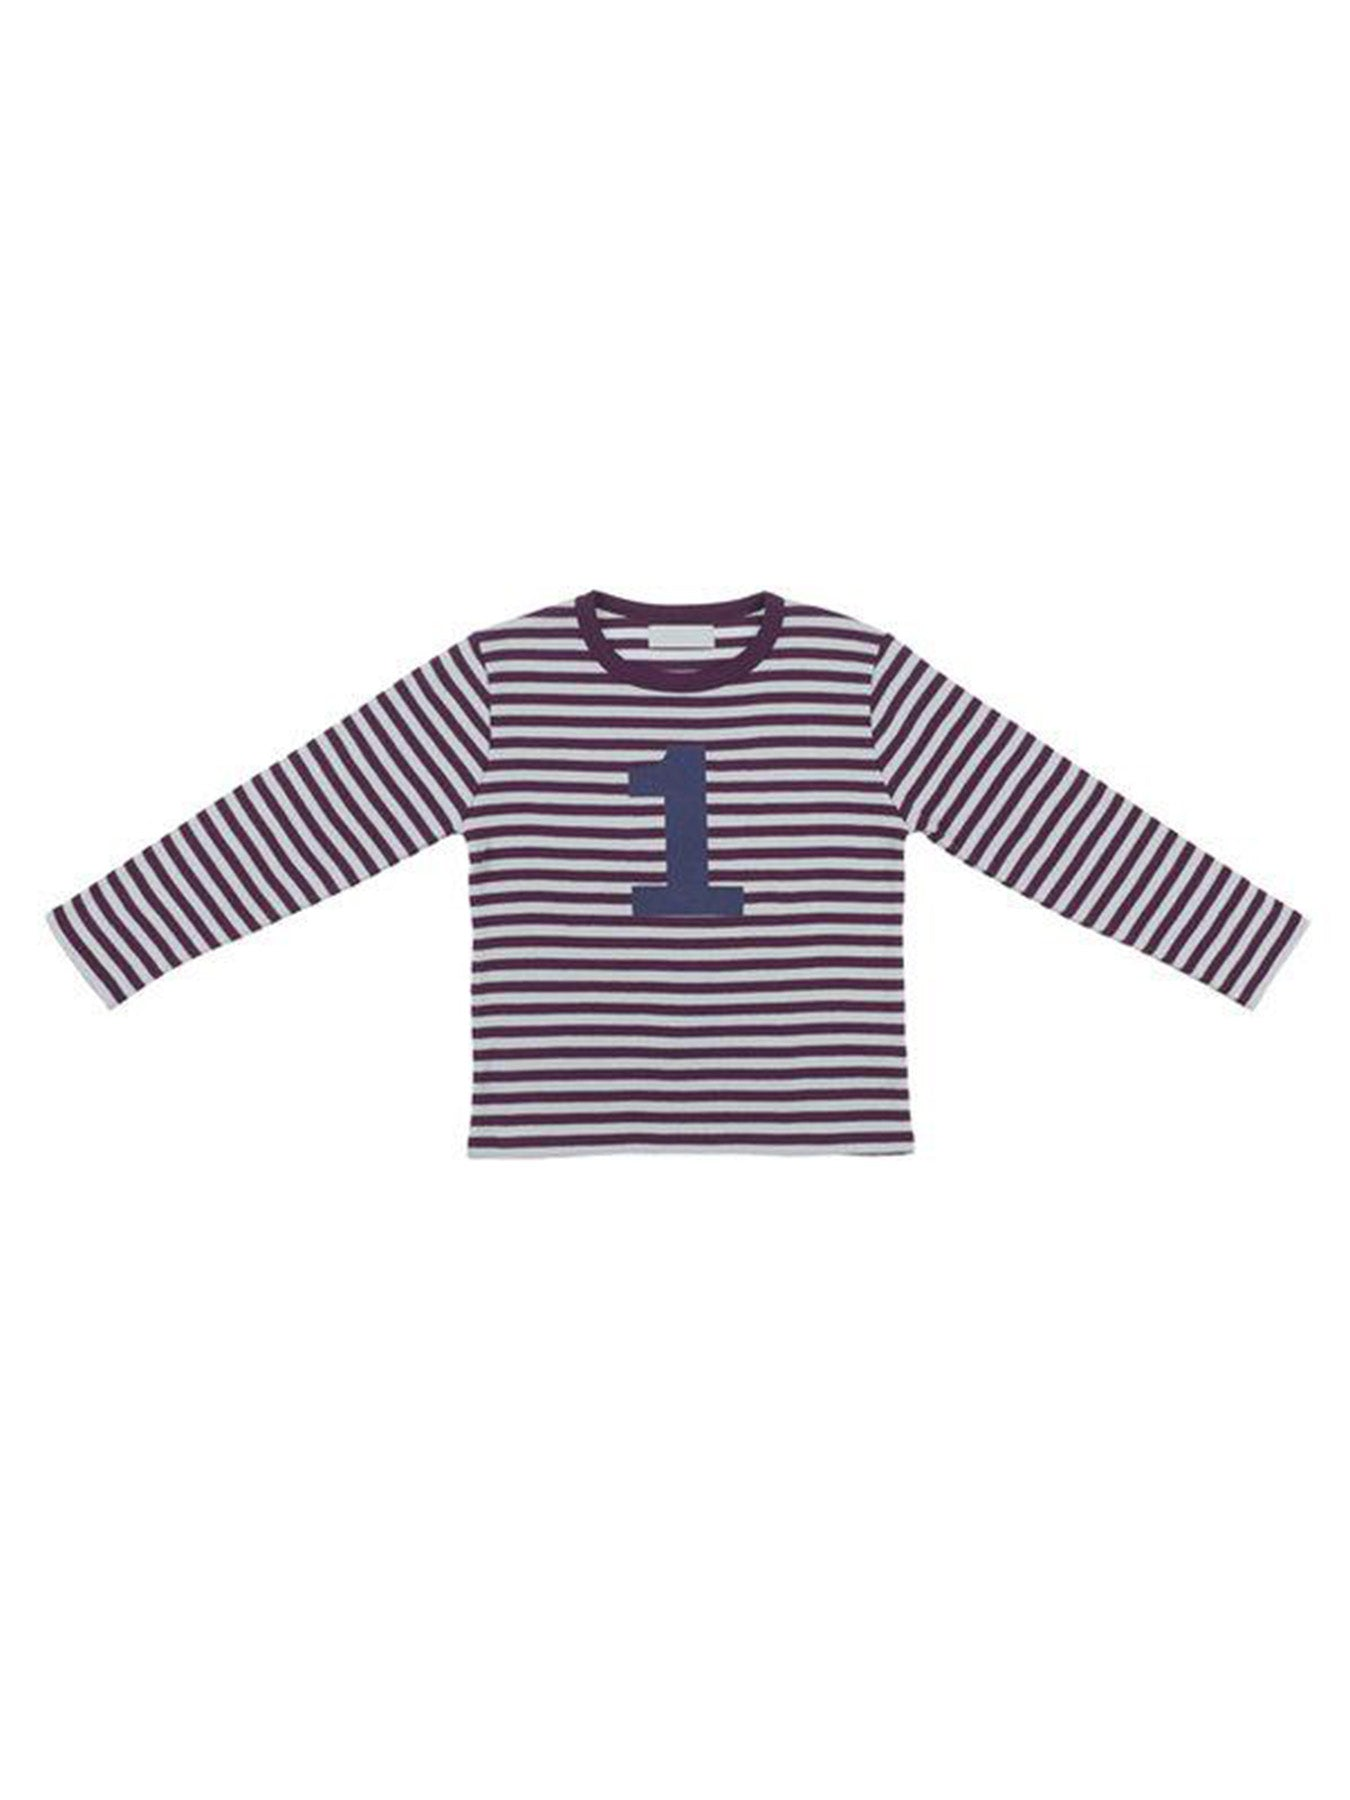 Plum & Dove Grey Number T Shirt (1/2Y)